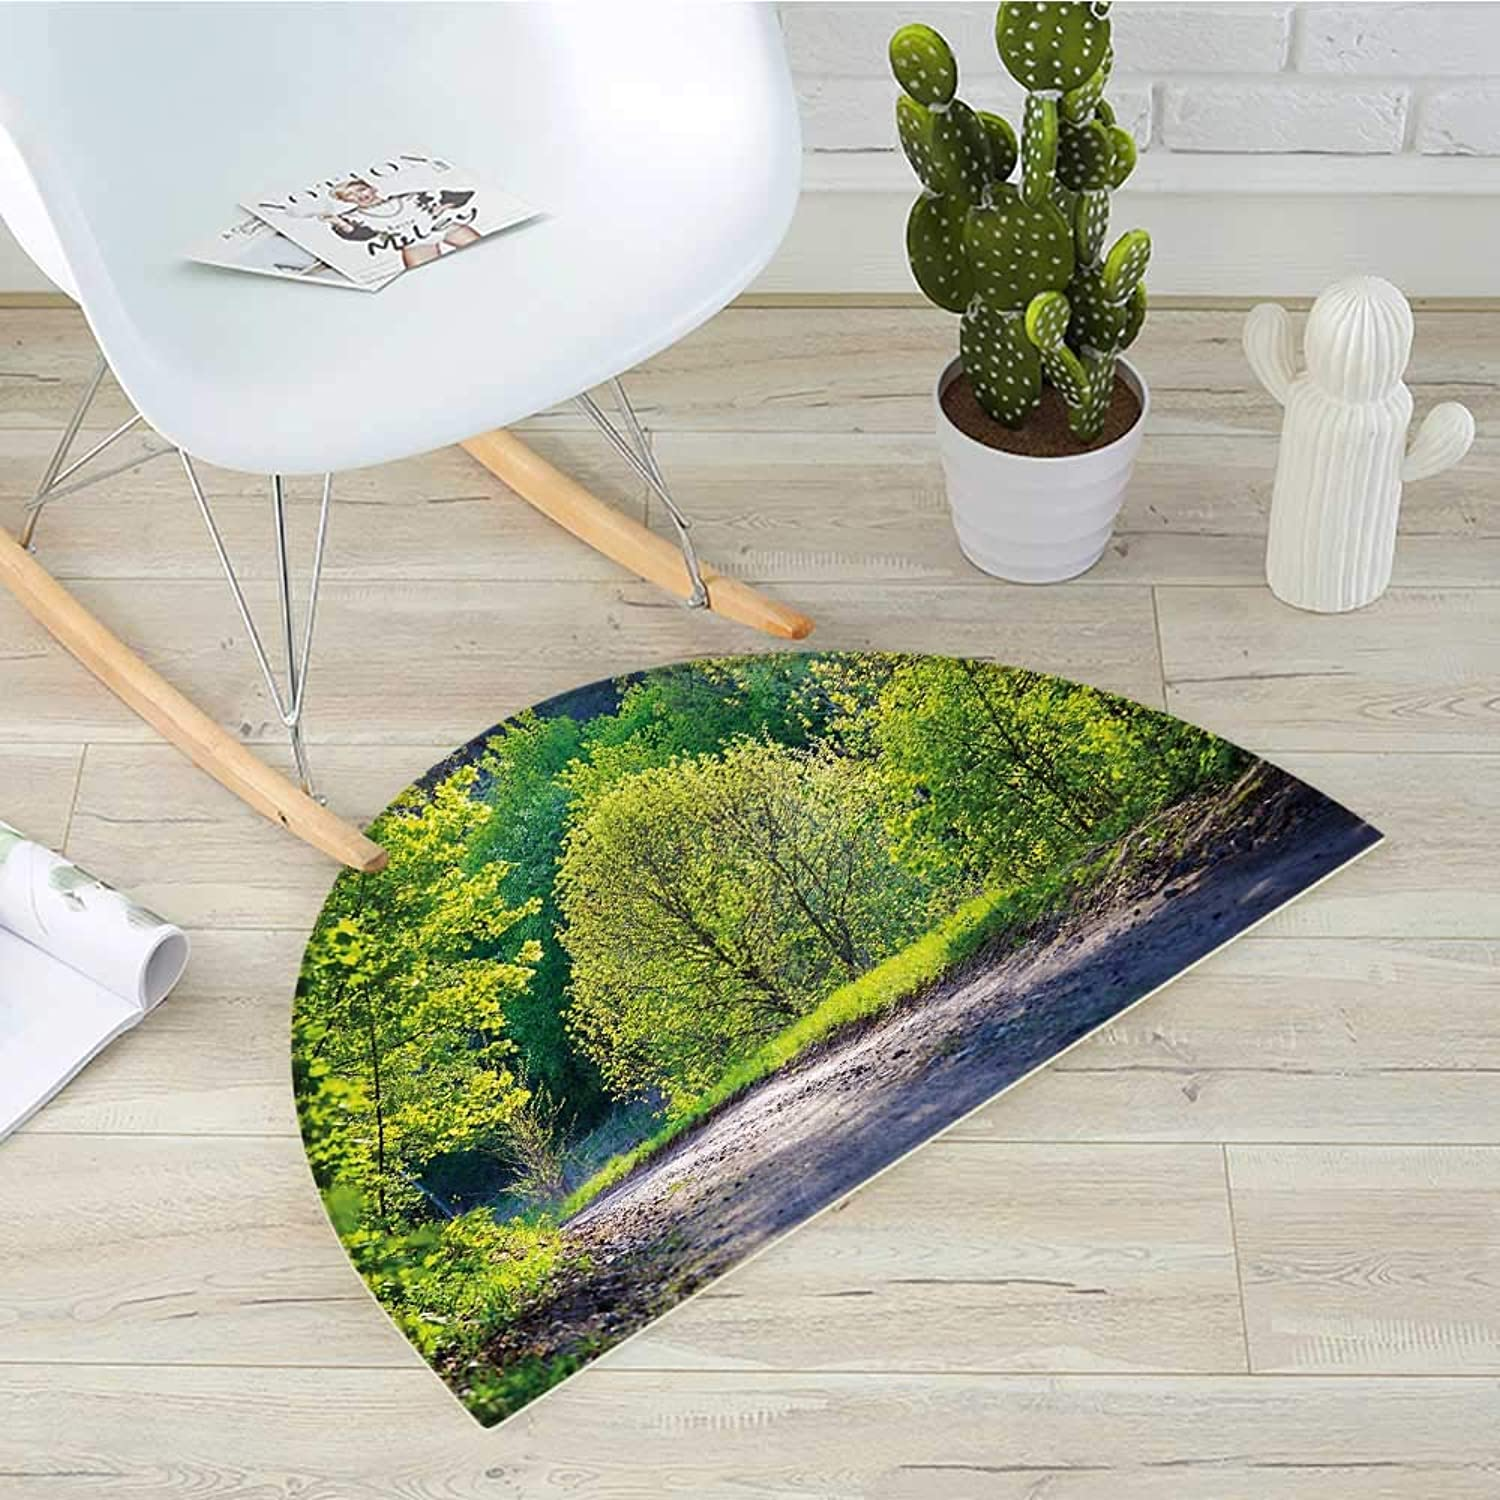 Spring Half Round Door mats Path in Forest by The Lake Sun Light Reflecting on Fresh Leaves Tranquil Image Bathroom Mat H 39.3  xD 59  Lime Green Grey